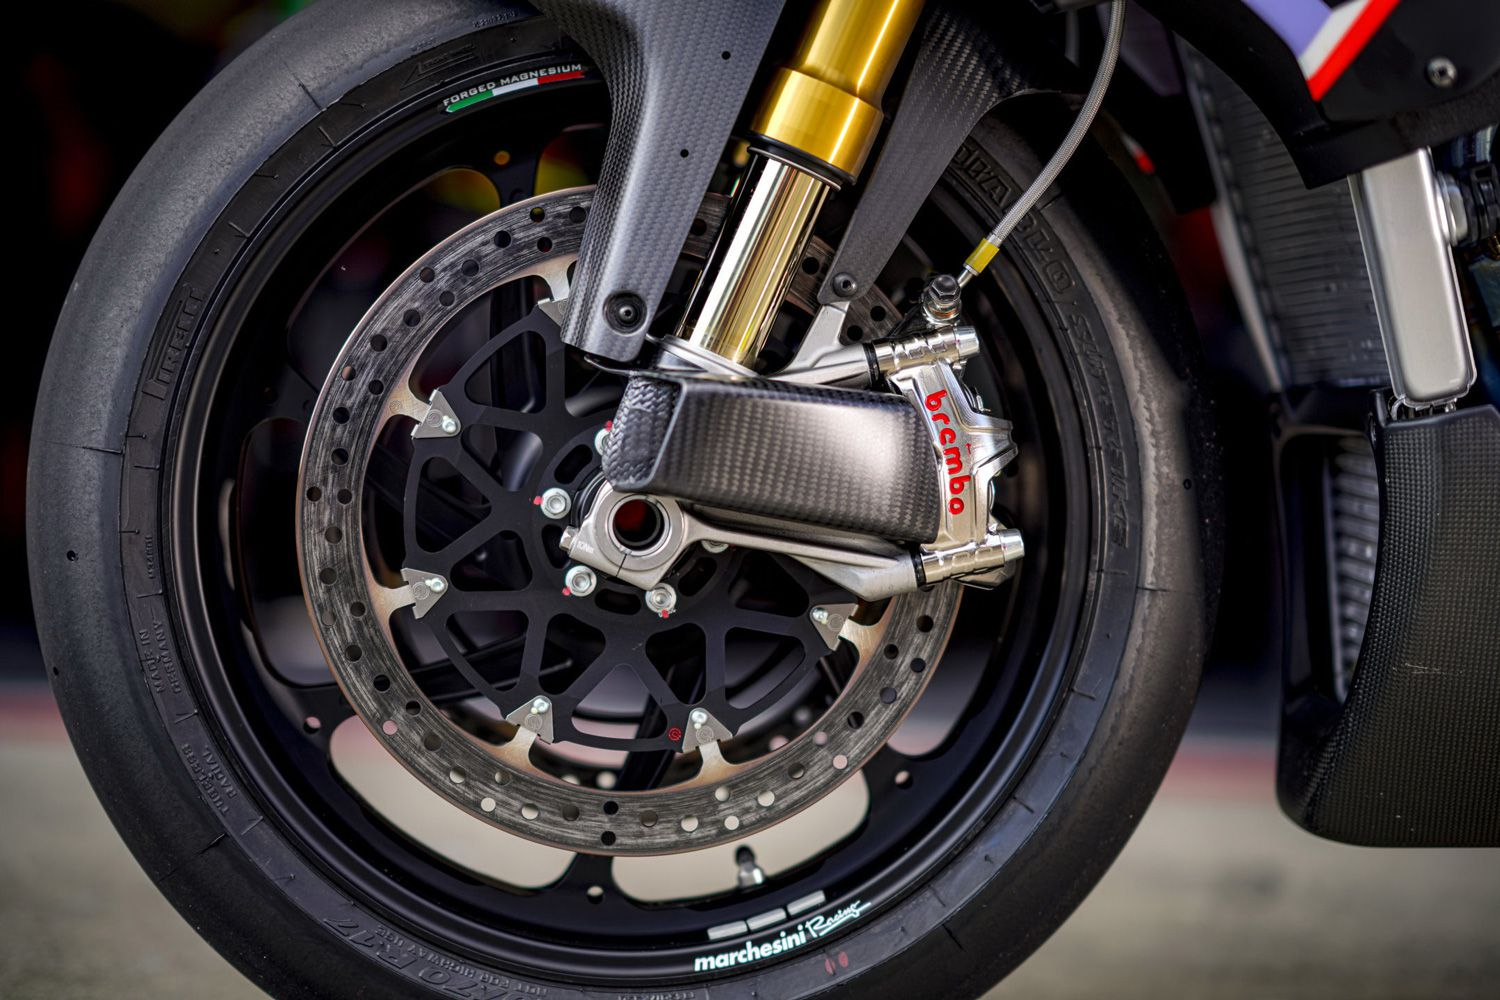 Top-shelf components dominate throughout. Forged Marchesini wheels and Brembo brakes with GP4-MS calipers mimic those on the RSV4 X model.